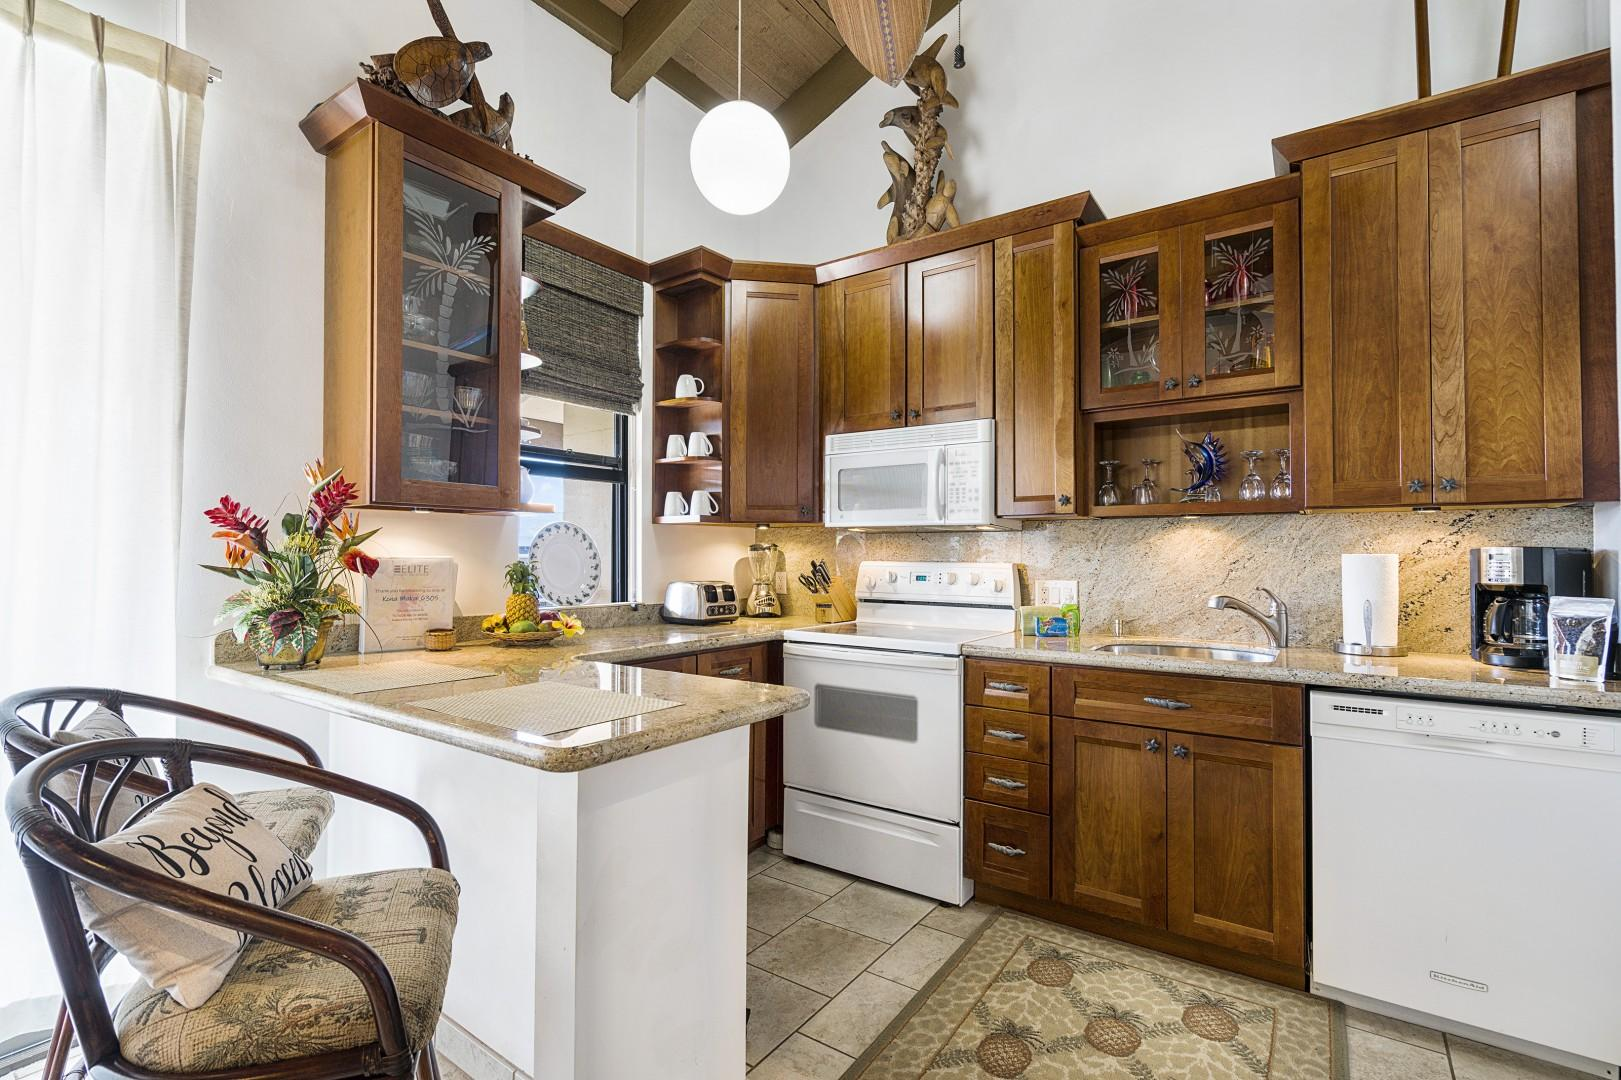 Upgraded kitchens with all the essentials to prepare home cooked meals!